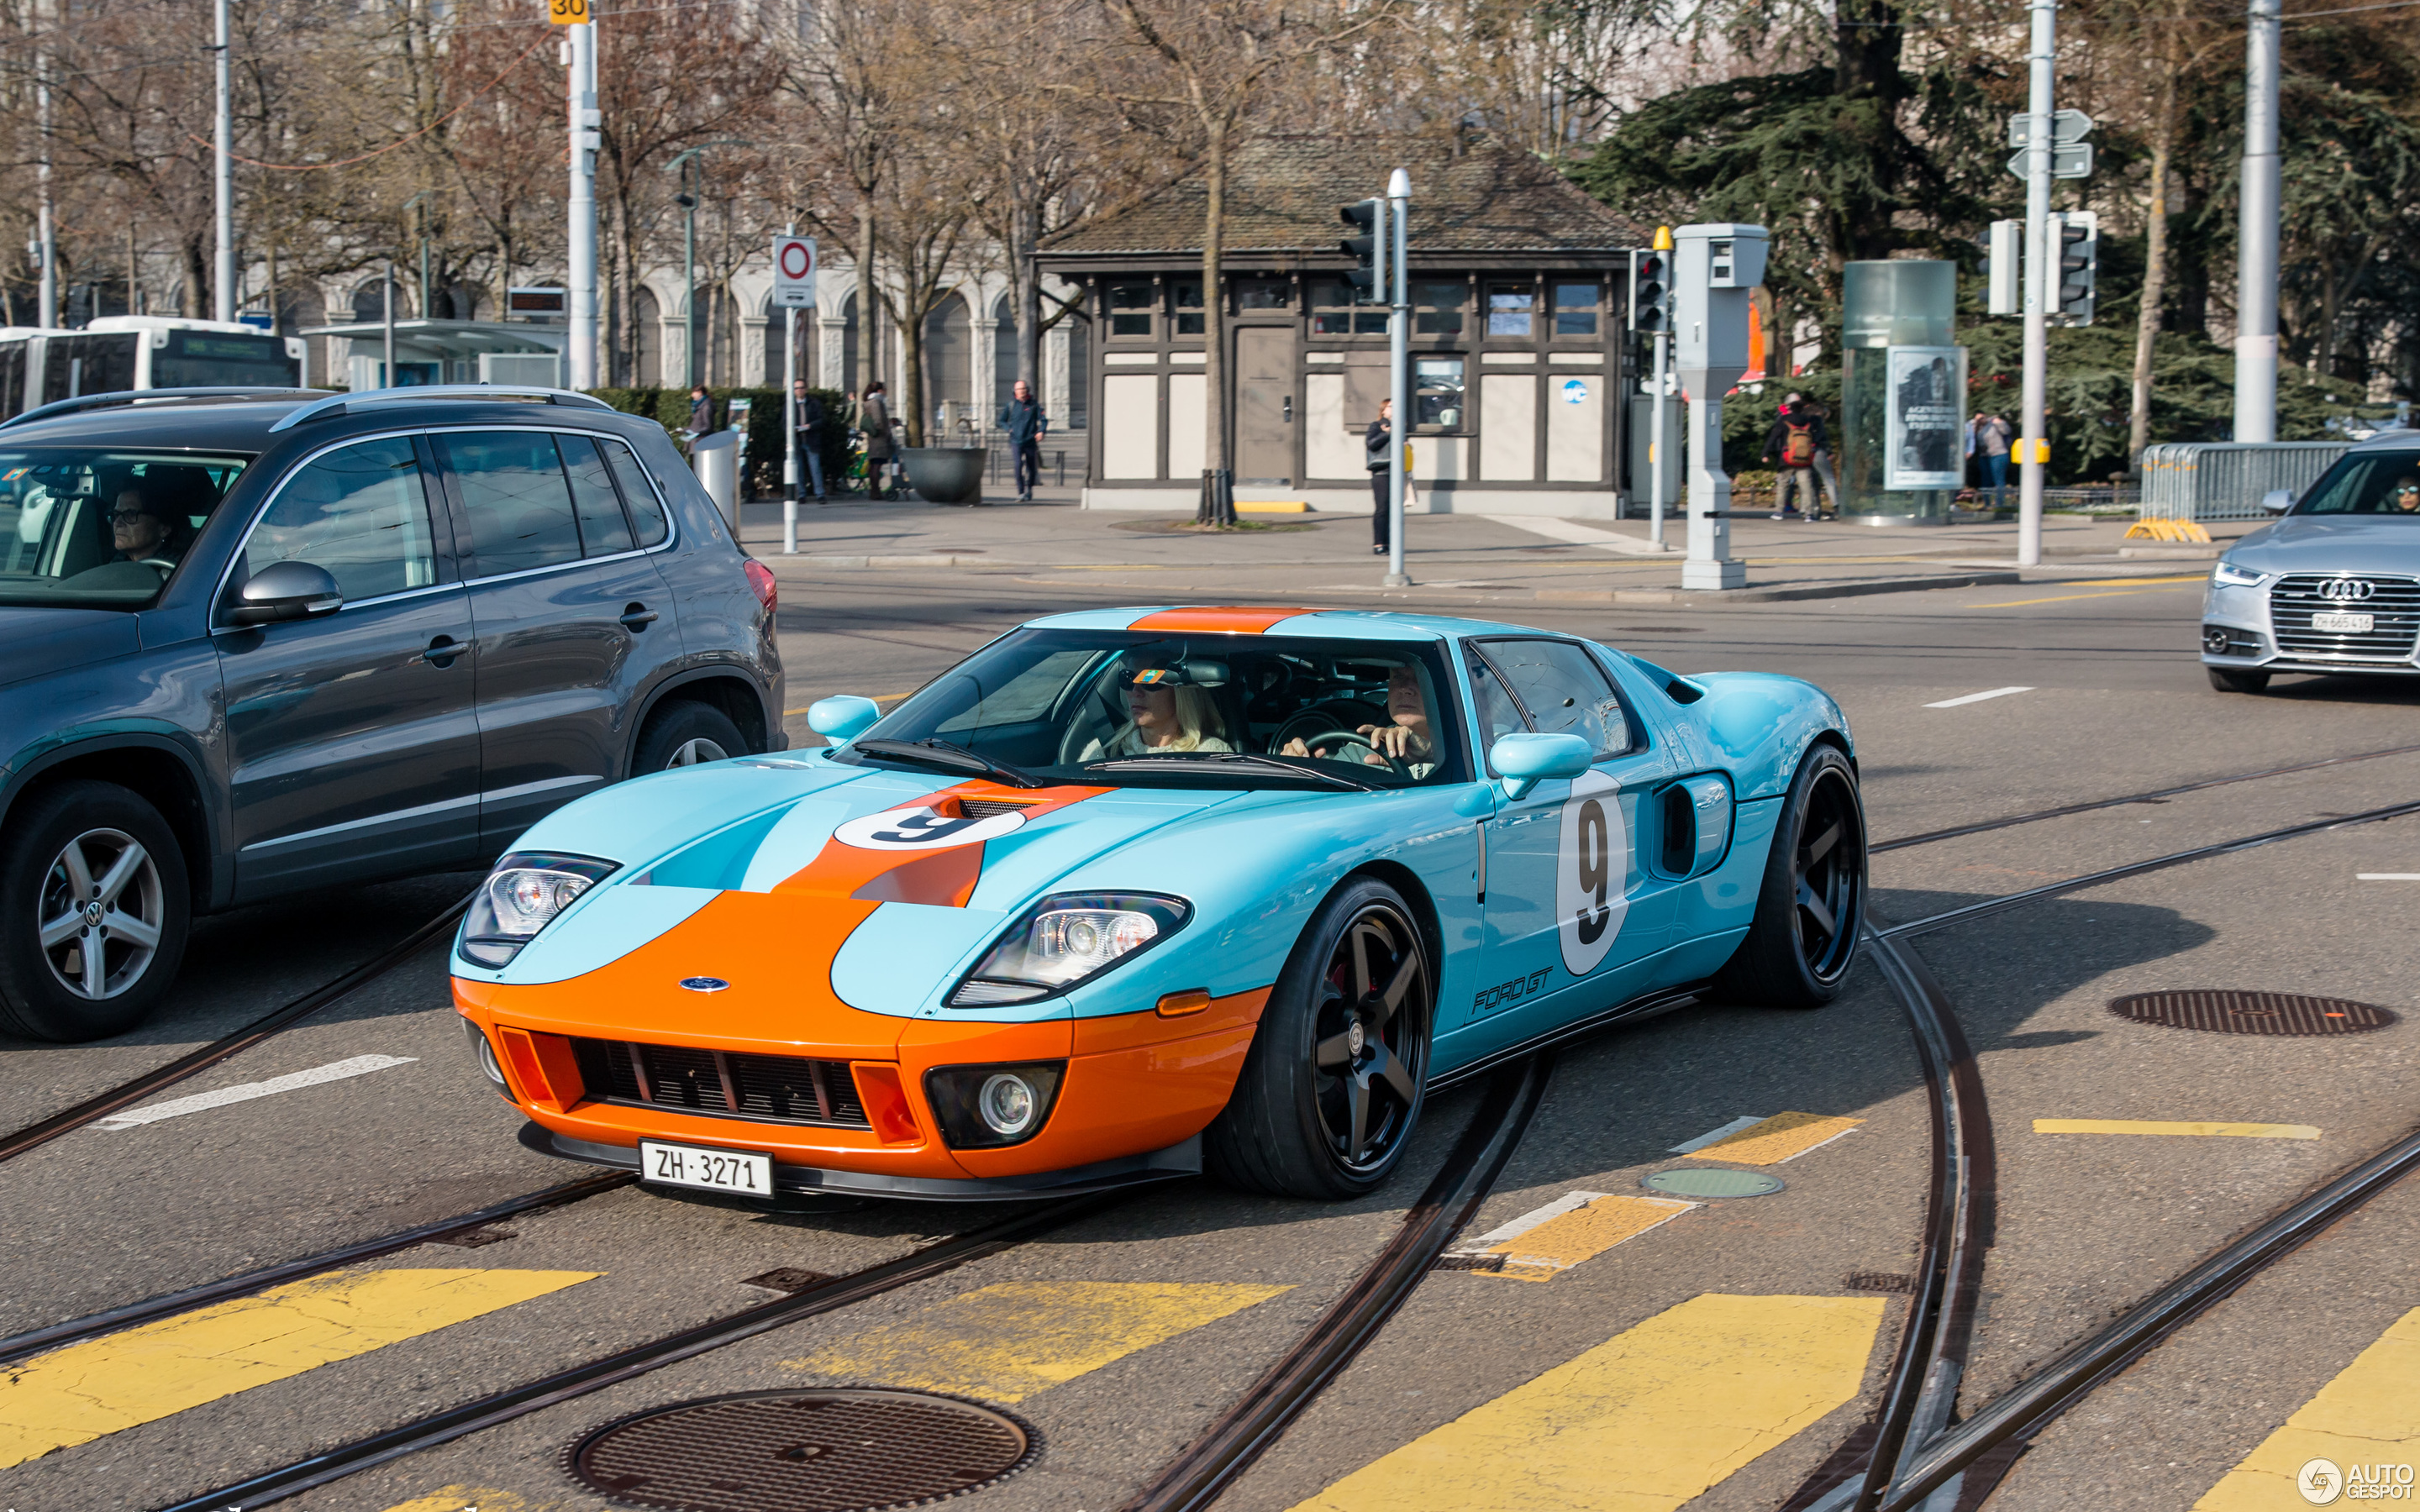 Ford GT Heritage Edition - 27 March 2018 - Auspot Ford Gt Heritage Edition on ford amarillo edition, ford f-150 heritage edition, land rover defender heritage edition, ford gt heritage wallpaper, ford ranchero heritage edition, which cars had a 486 edition, ford thunderbird heritage edition, ford gt heritage map sticker, hyundai elantra heritage edition, dodge challenger heritage edition, 2015 ford mustang 50th anniversary edition,